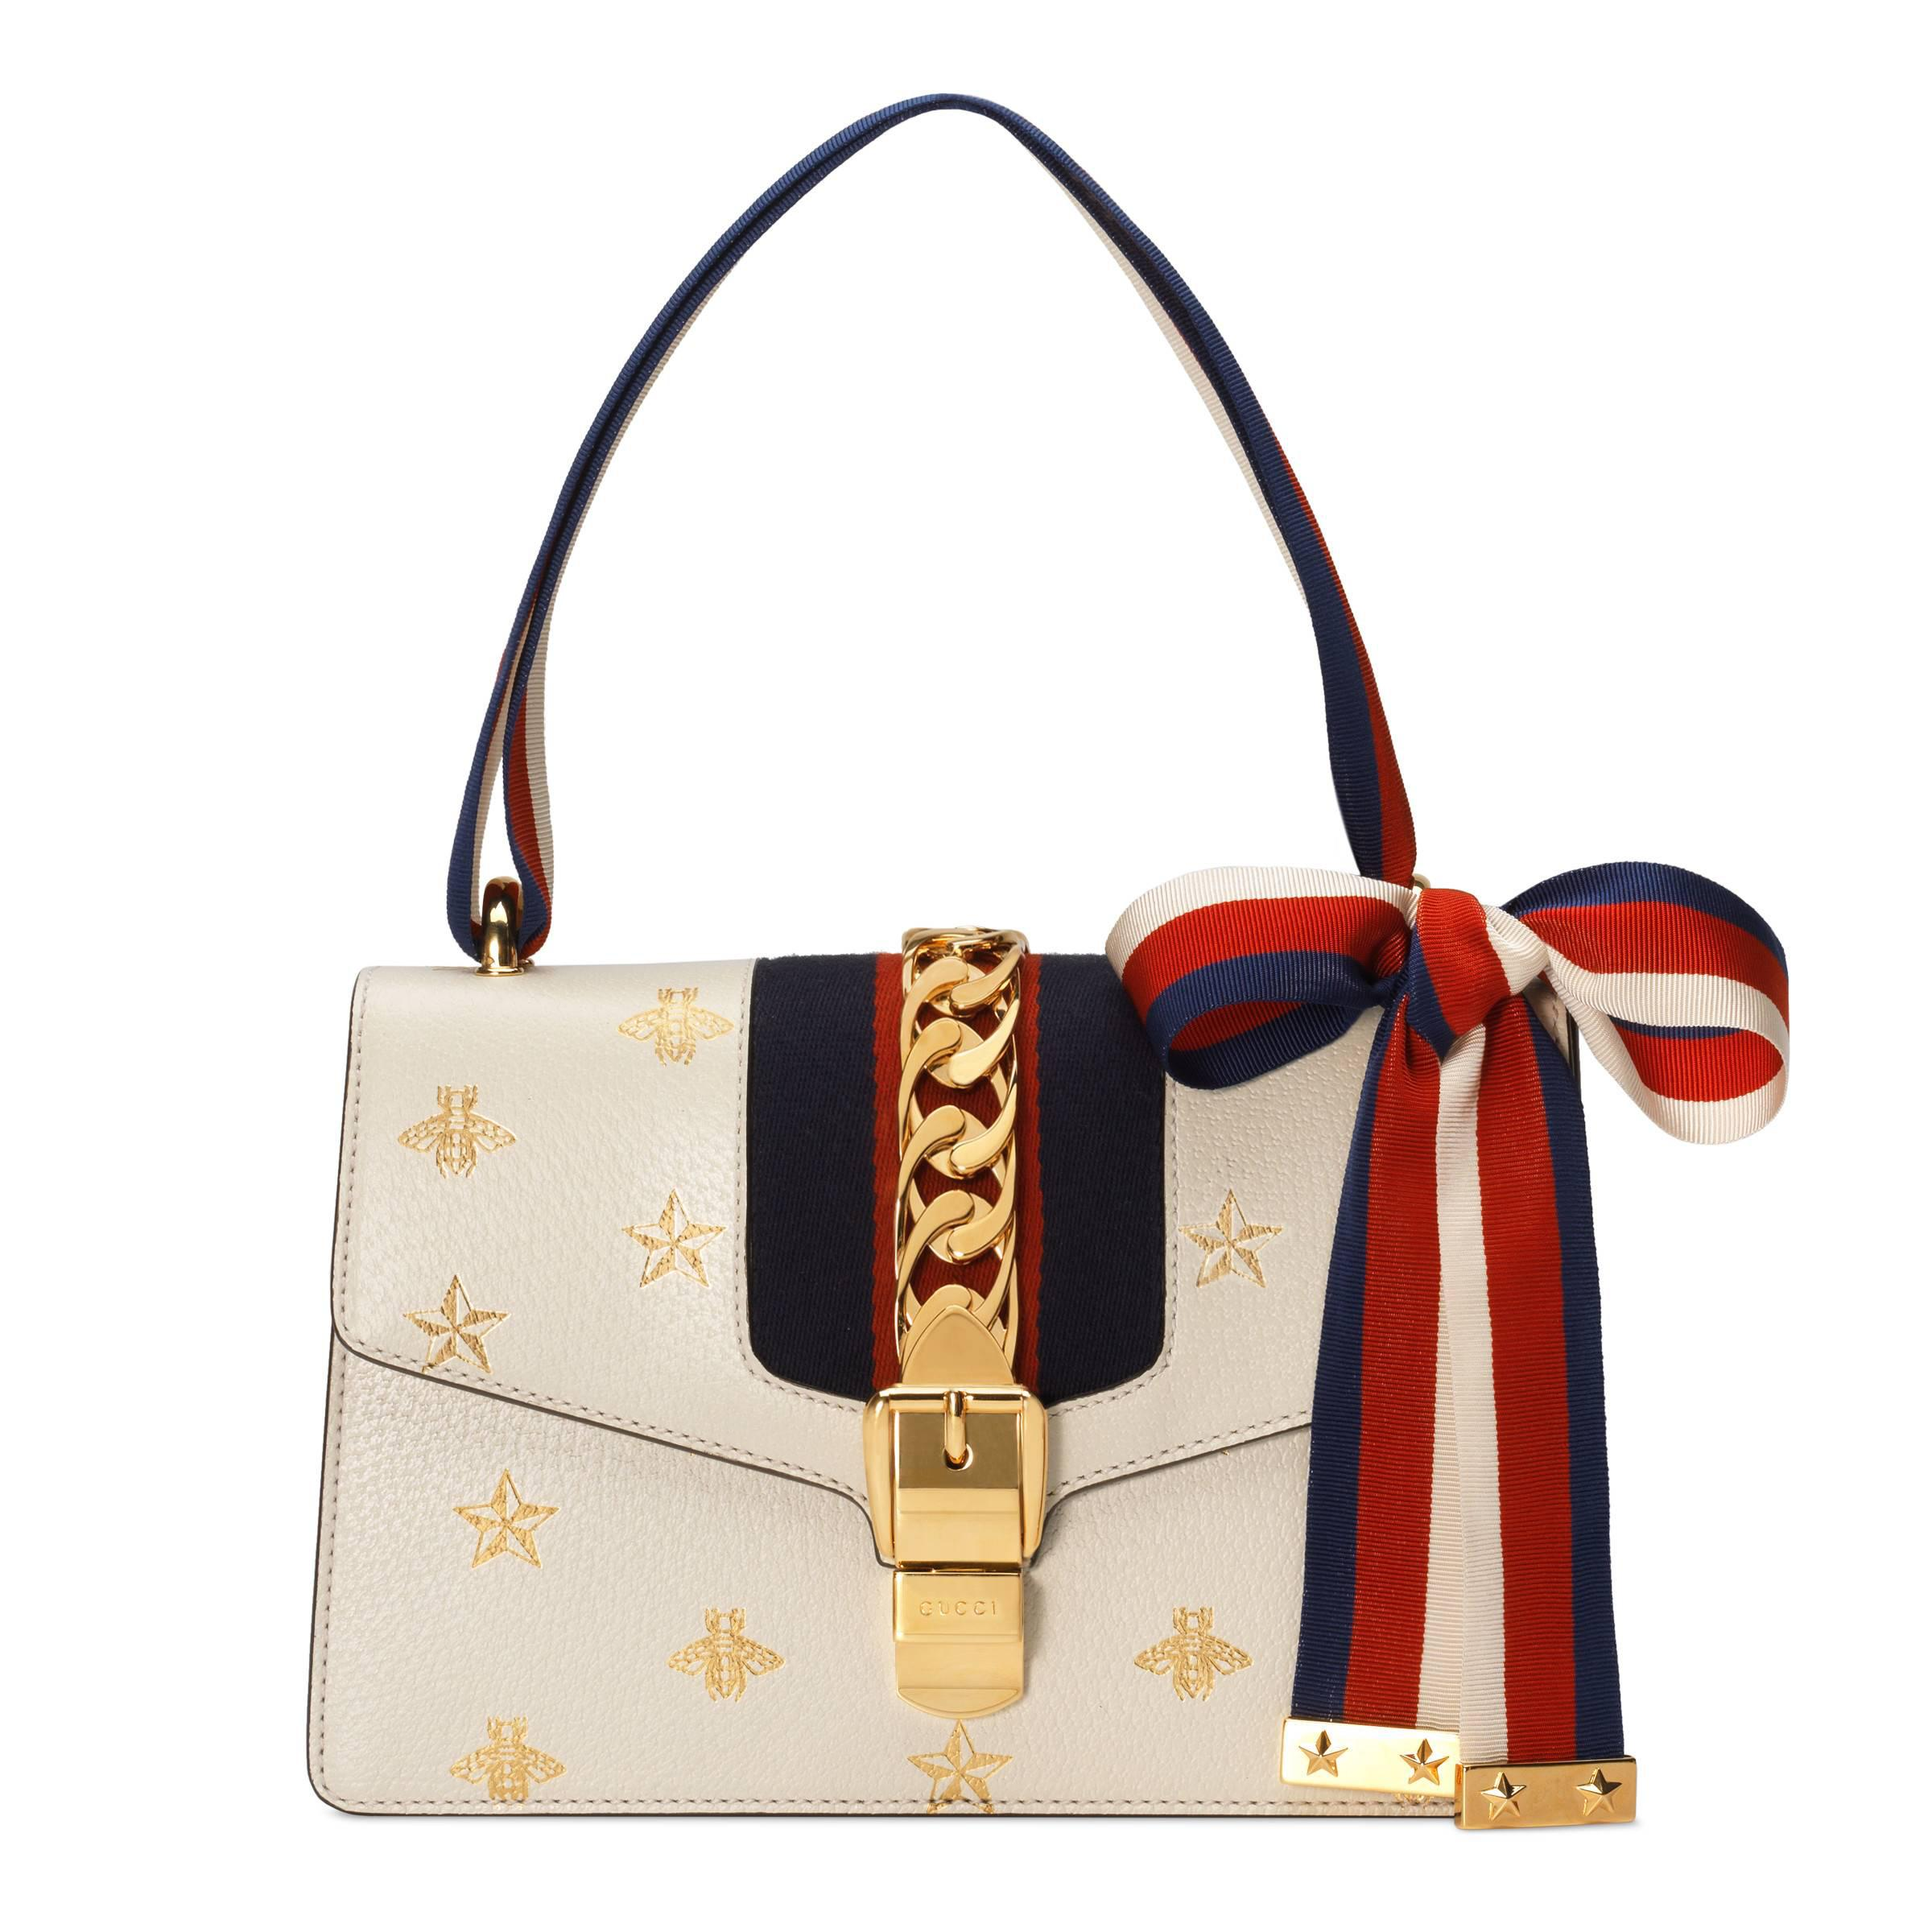 221cfbb49056 Gucci Sylvie Bee Star Small Shoulder Bag in Red - Lyst